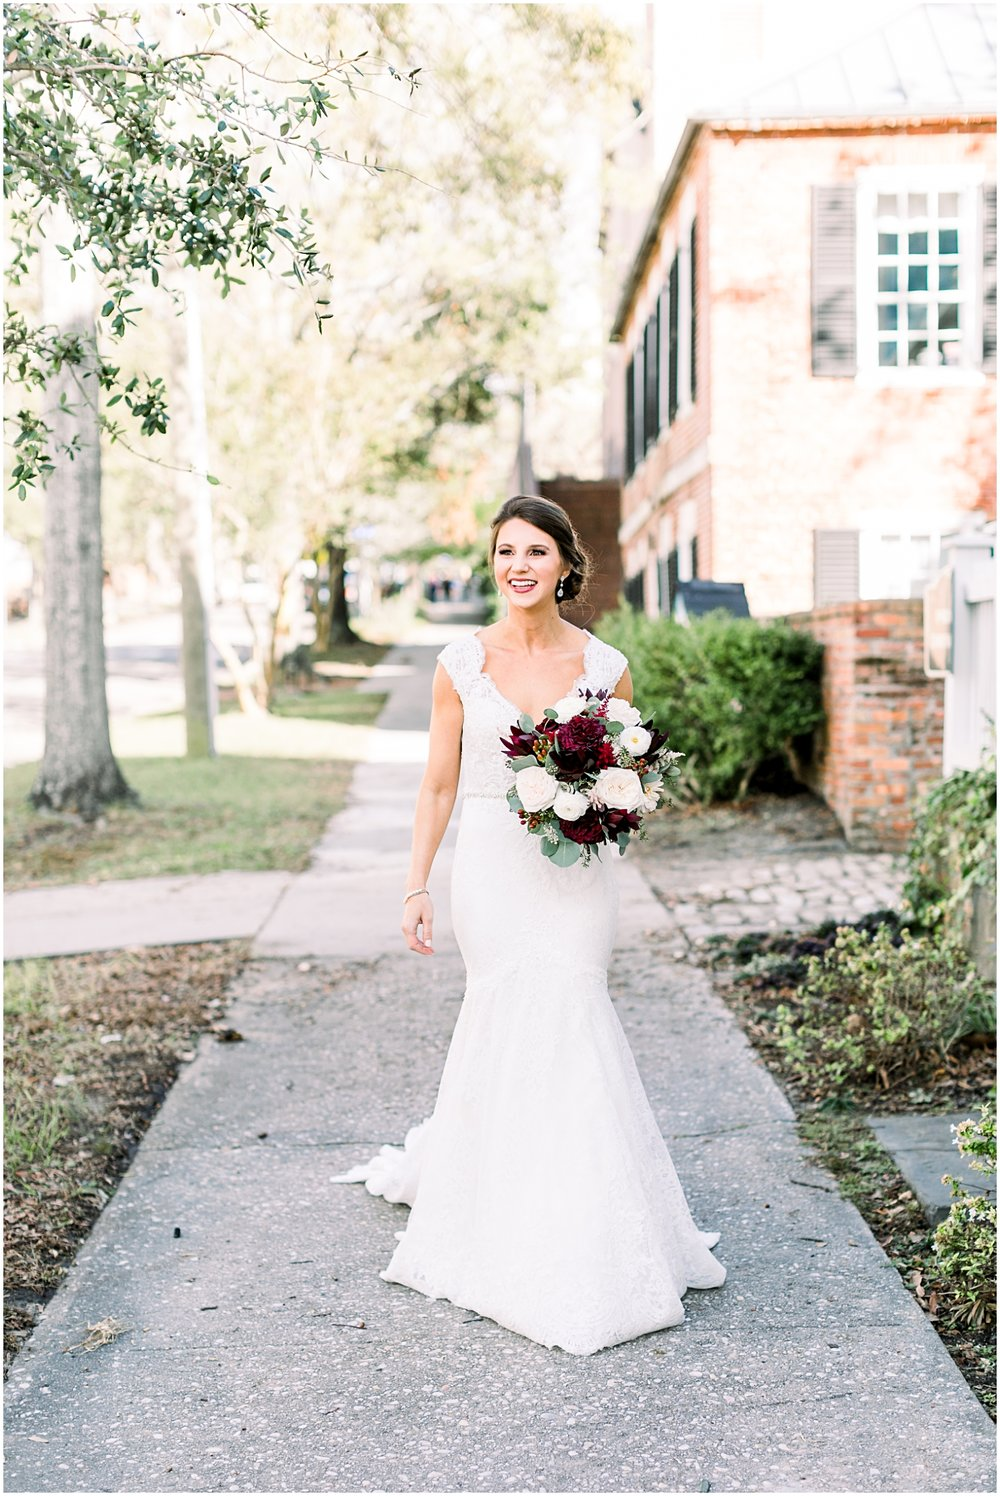 128 South Wedding venue, Downtown Wilmington NC Wedding_Erin L. Taylor Photography_0020.jpg